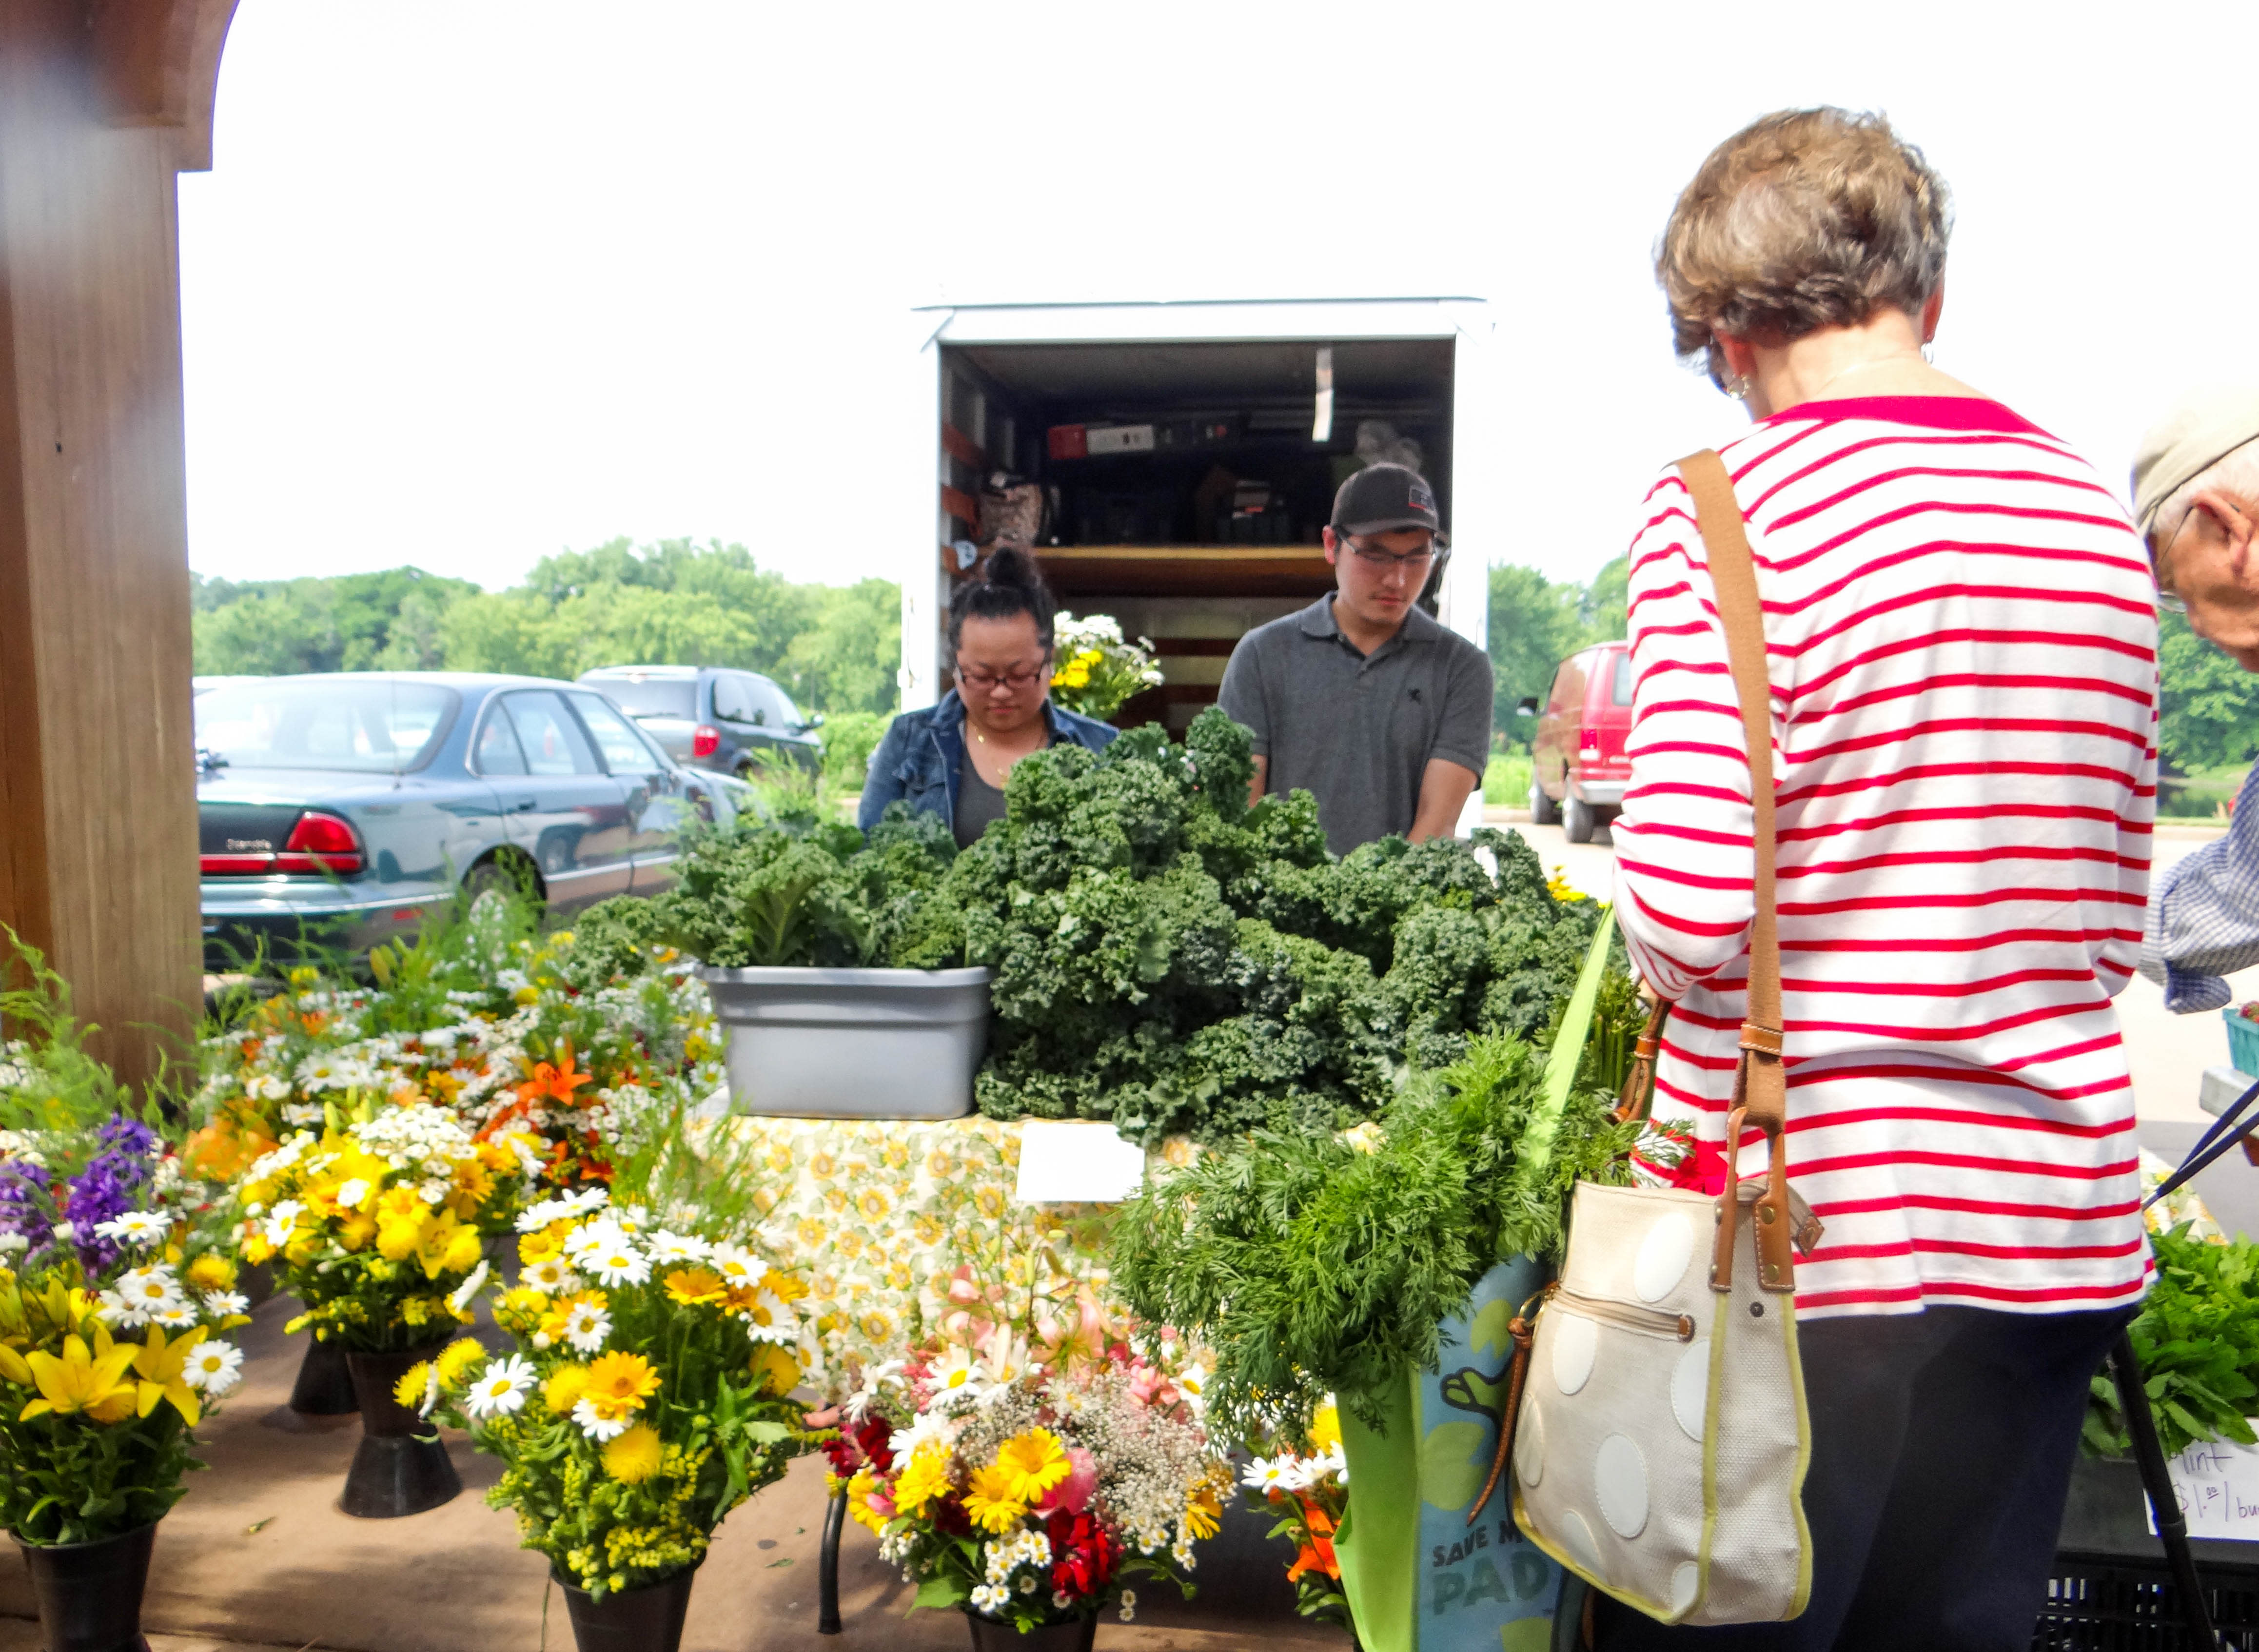 Farmer's Market in Downtown Eau Claire, Wisconsin